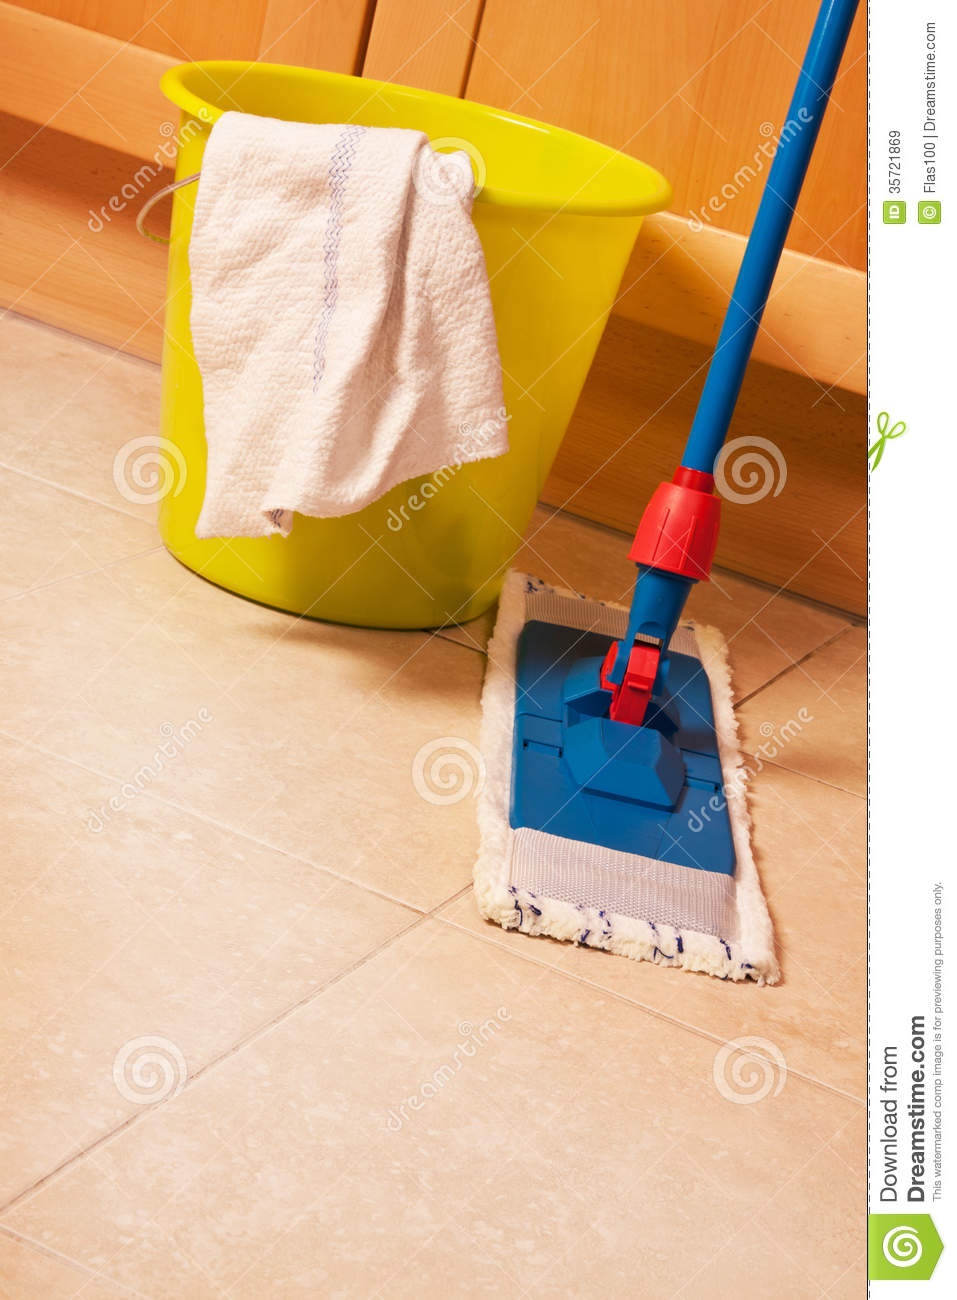 Dirty house cleaning royalty free stock photo for House cleaning stock photos